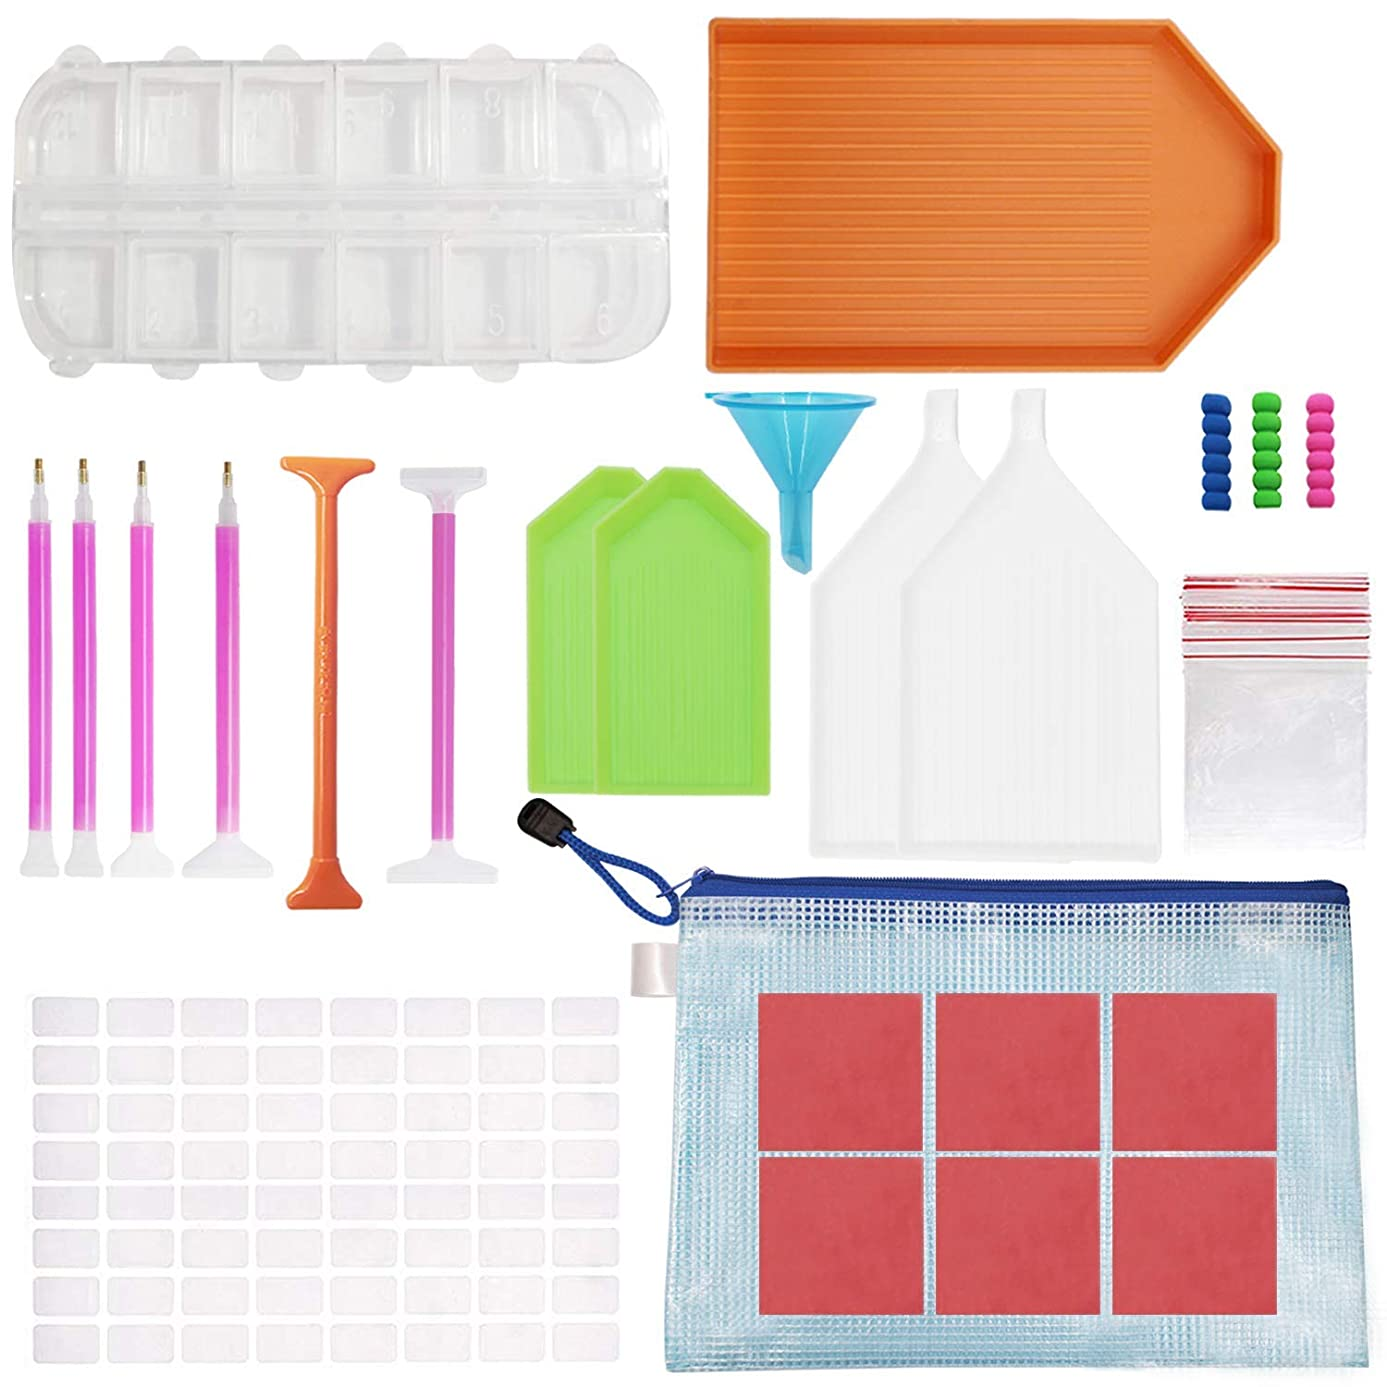 Bestlus 54 Pcs Diamond Painting Kits Tools Accessories for Adults Kids with 12 Slots Storage Containers